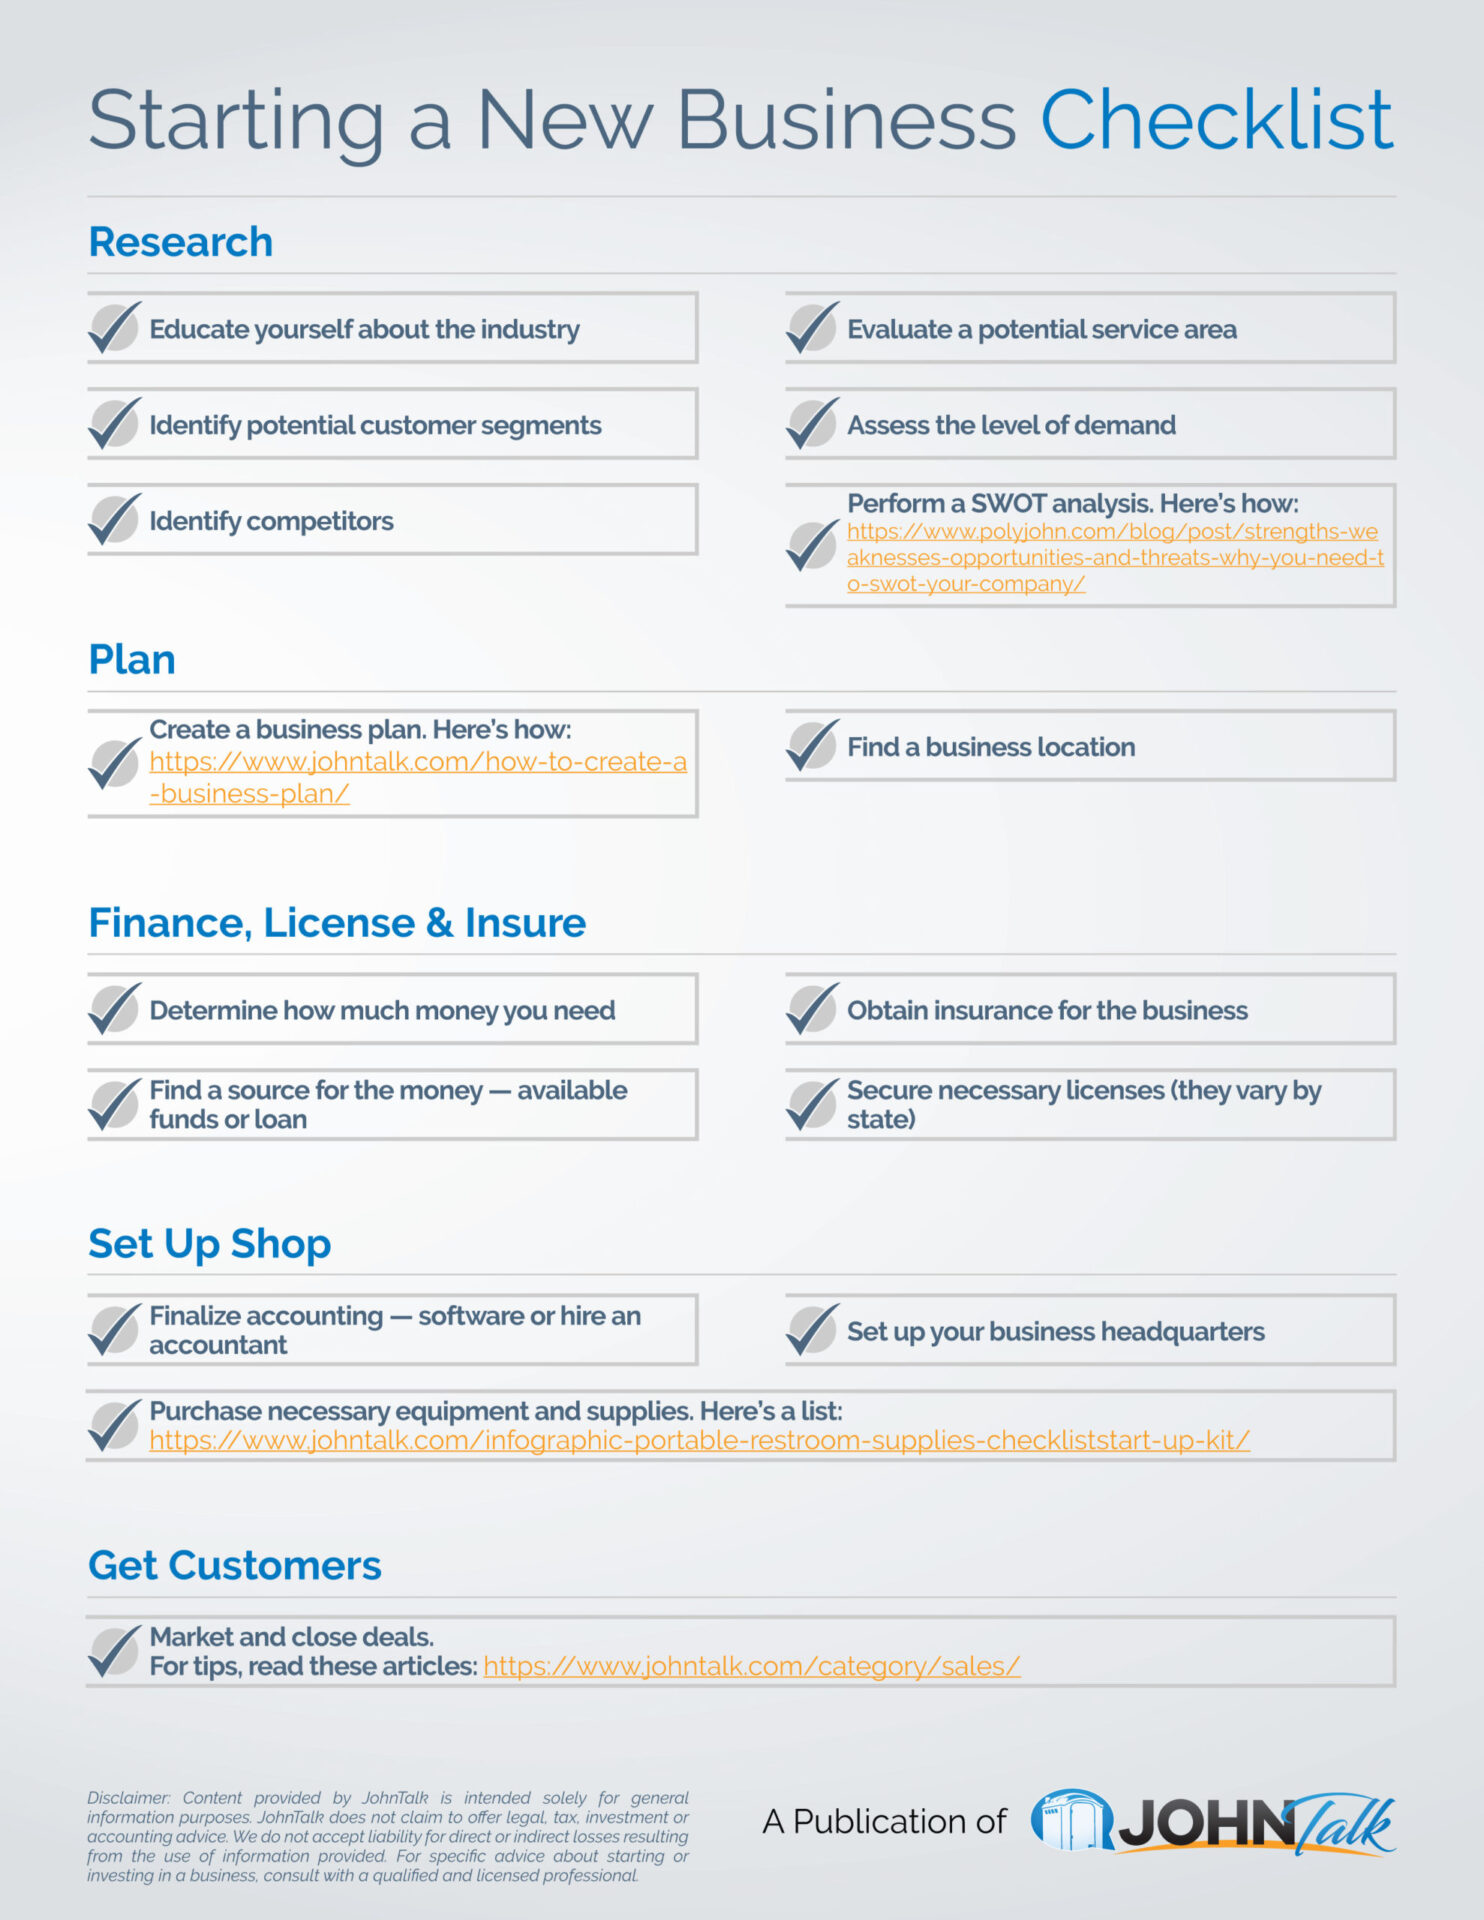 Starting a New Business Checklist